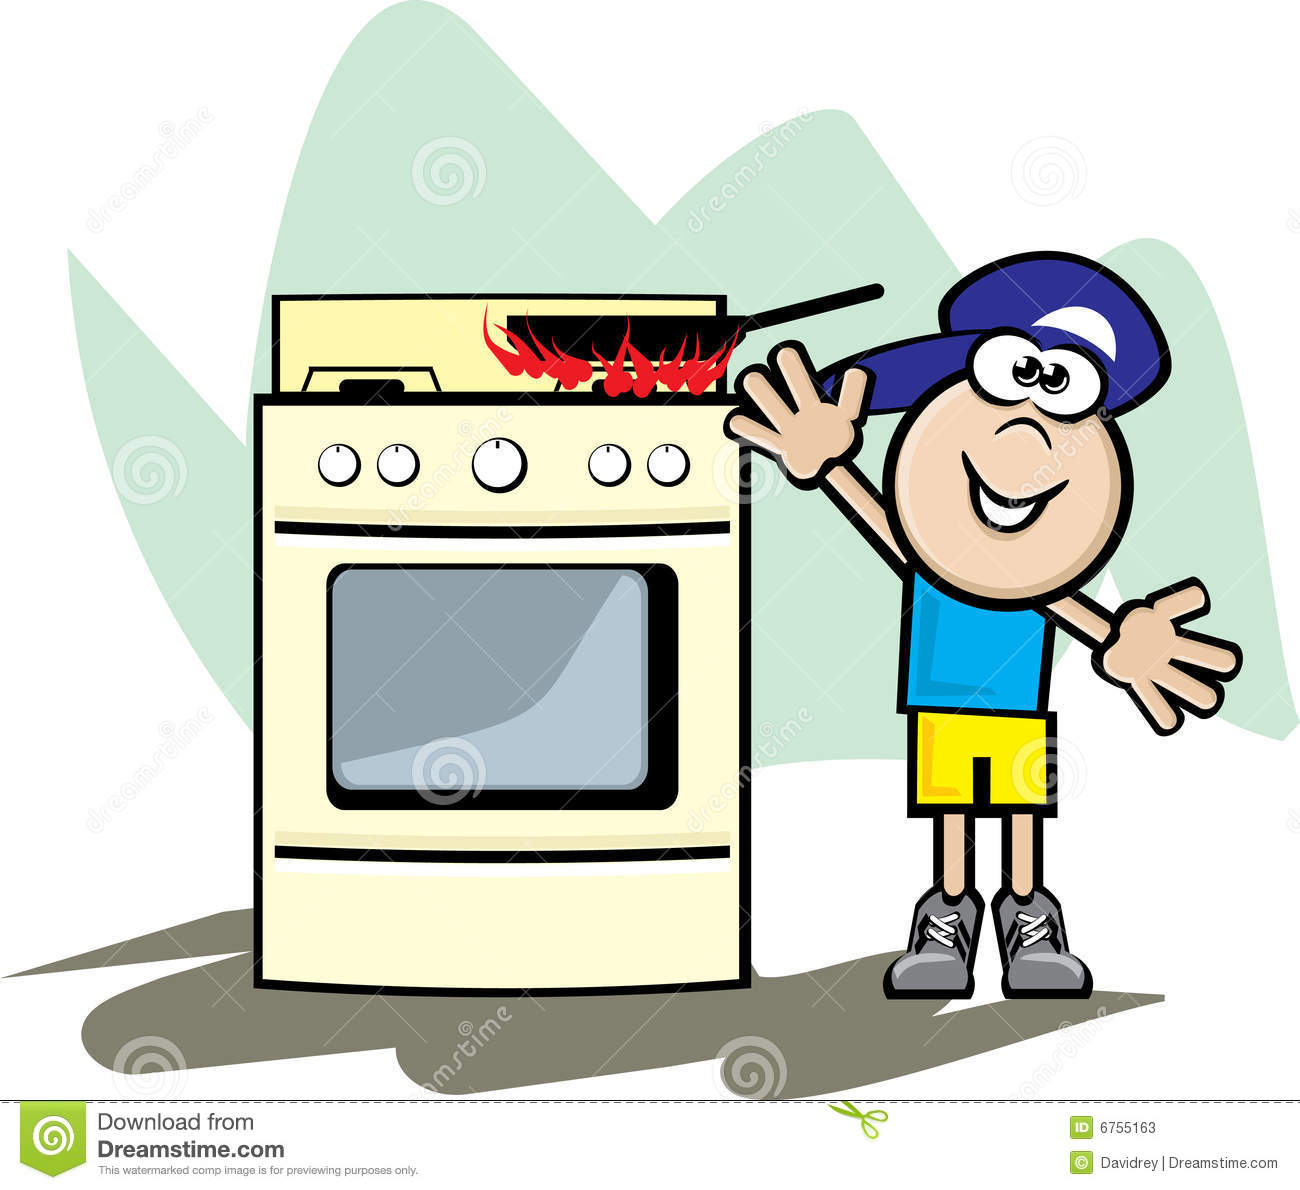 Stove And Child Danger Stock Vector Illustration Of Fire